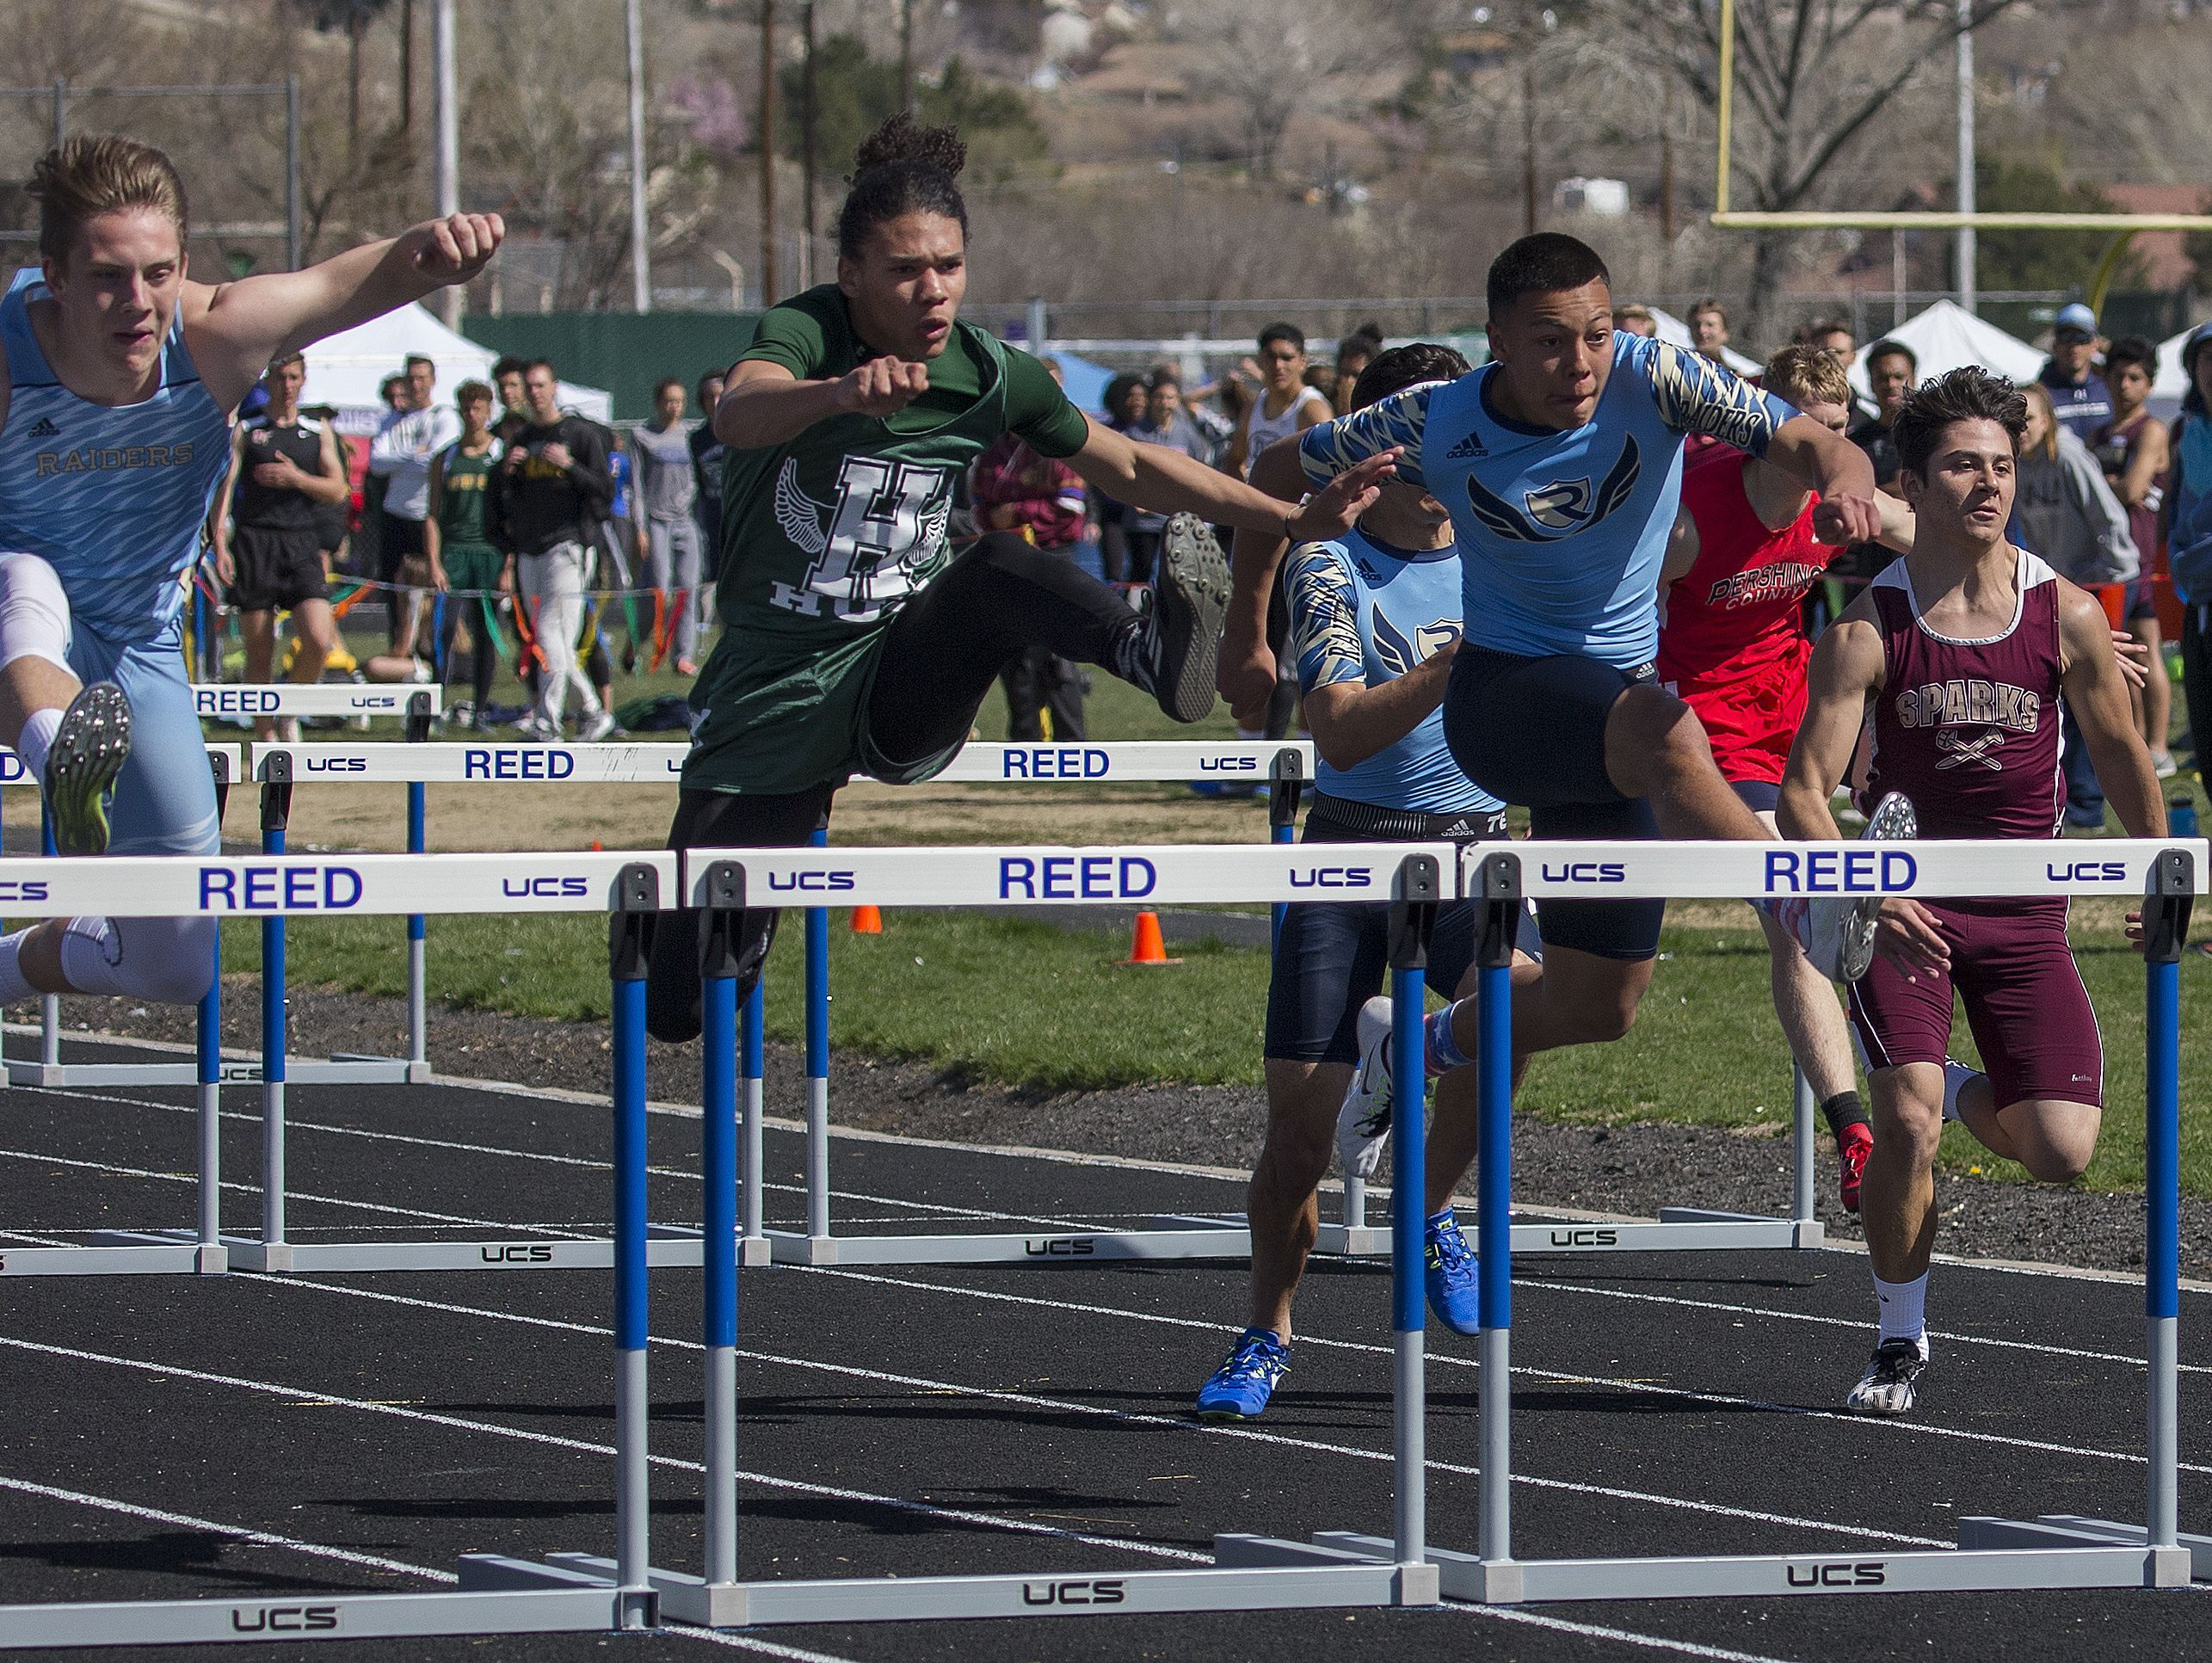 The boys 100-meter hurdles finals during the Reed Sparks Rotary Invitational track and field event at Reed on Saturday.